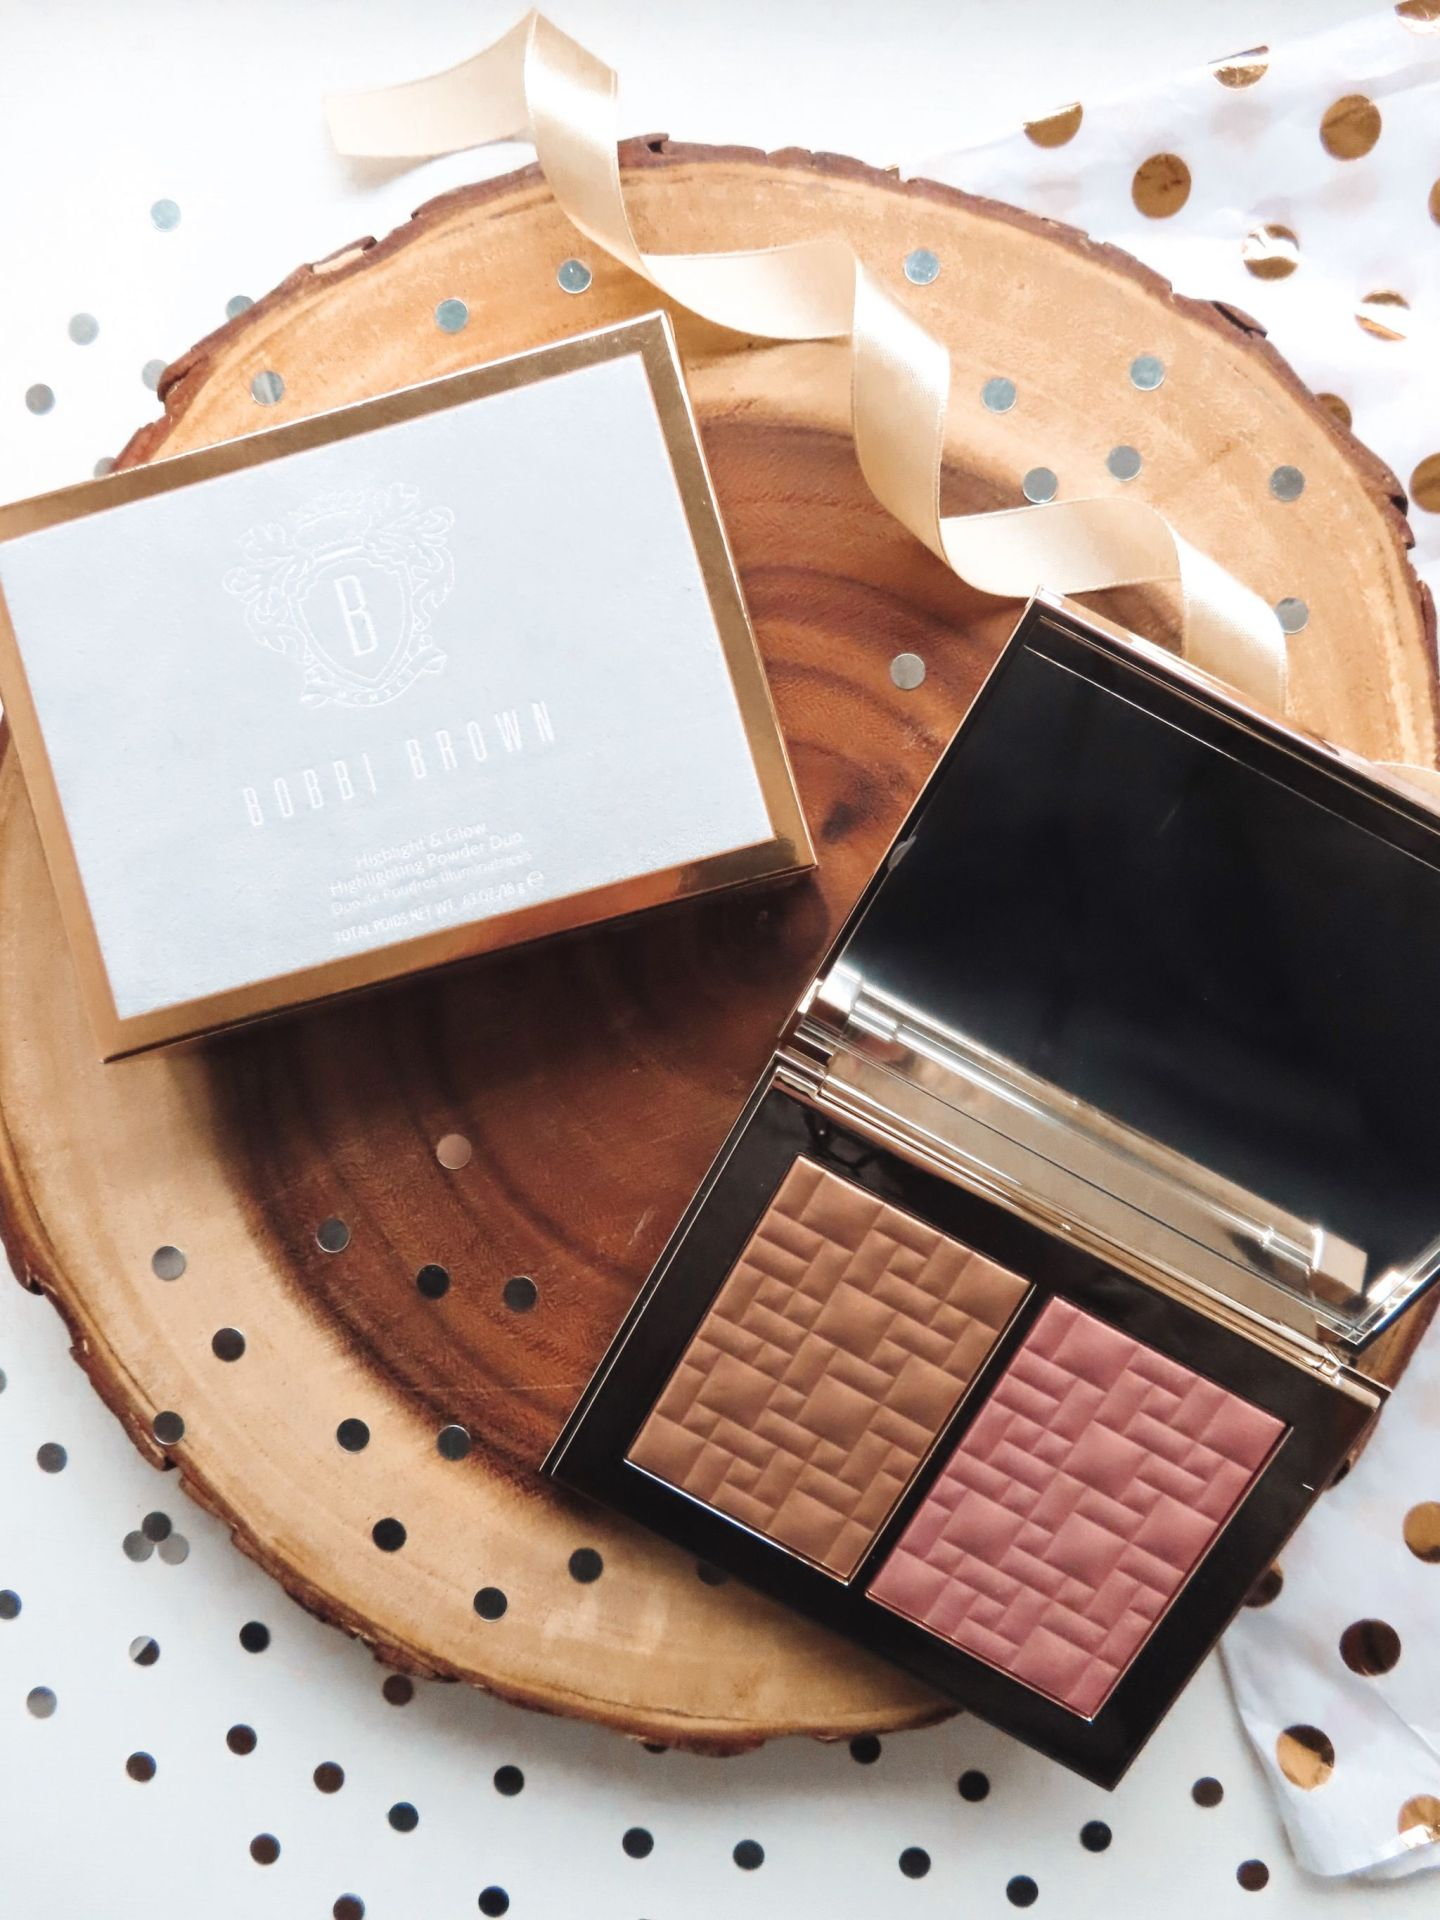 Bobbi Brown Highlight and Glow Palette